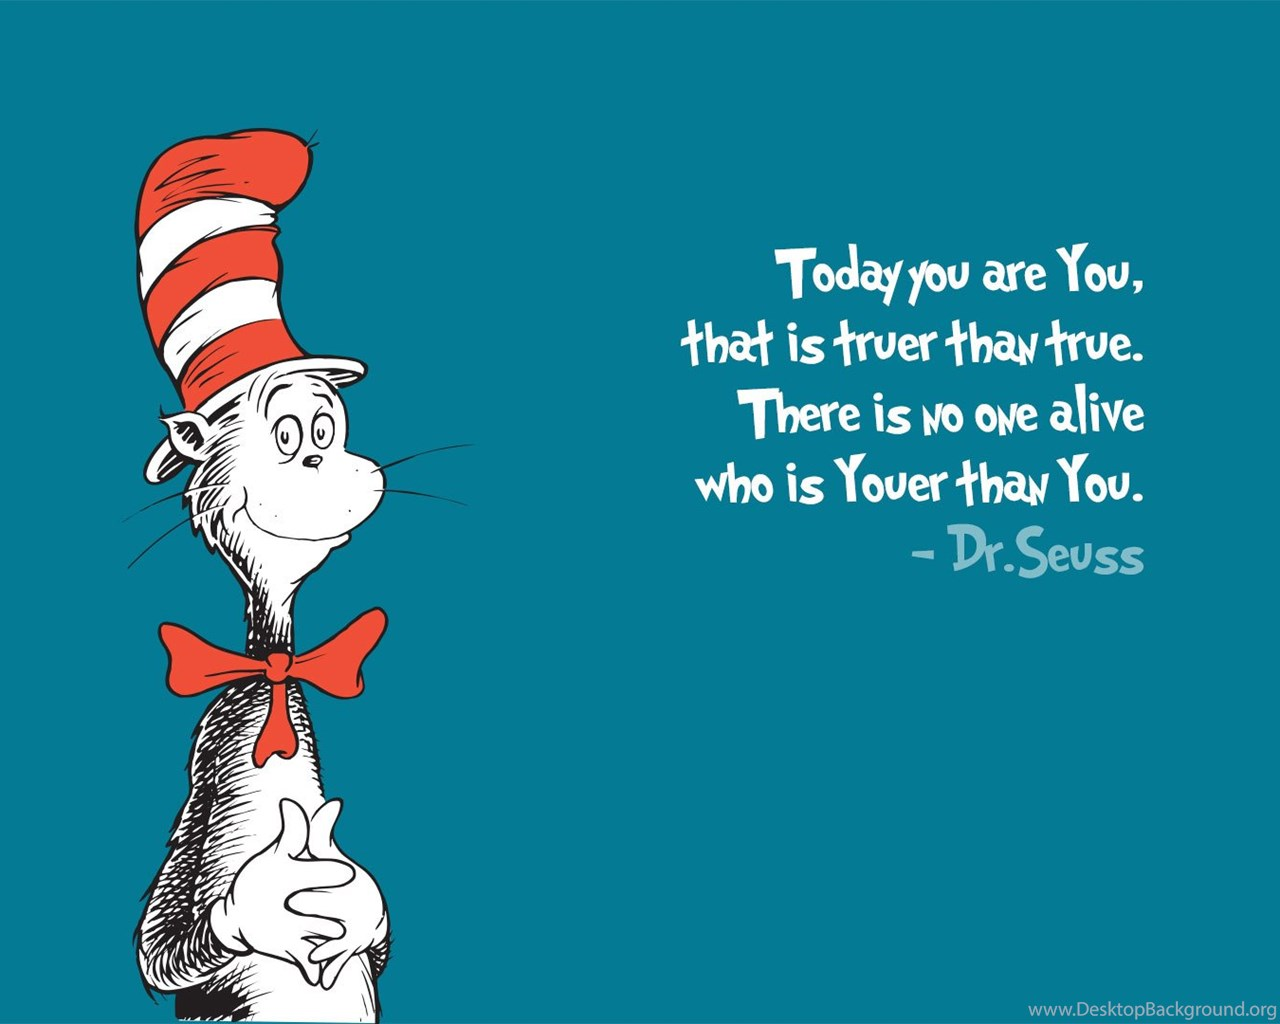 Doctor Who Wallpaper Iphone 4s High Resolution Cartoon Dr Seuss Quotes Wallpapers Hd 1